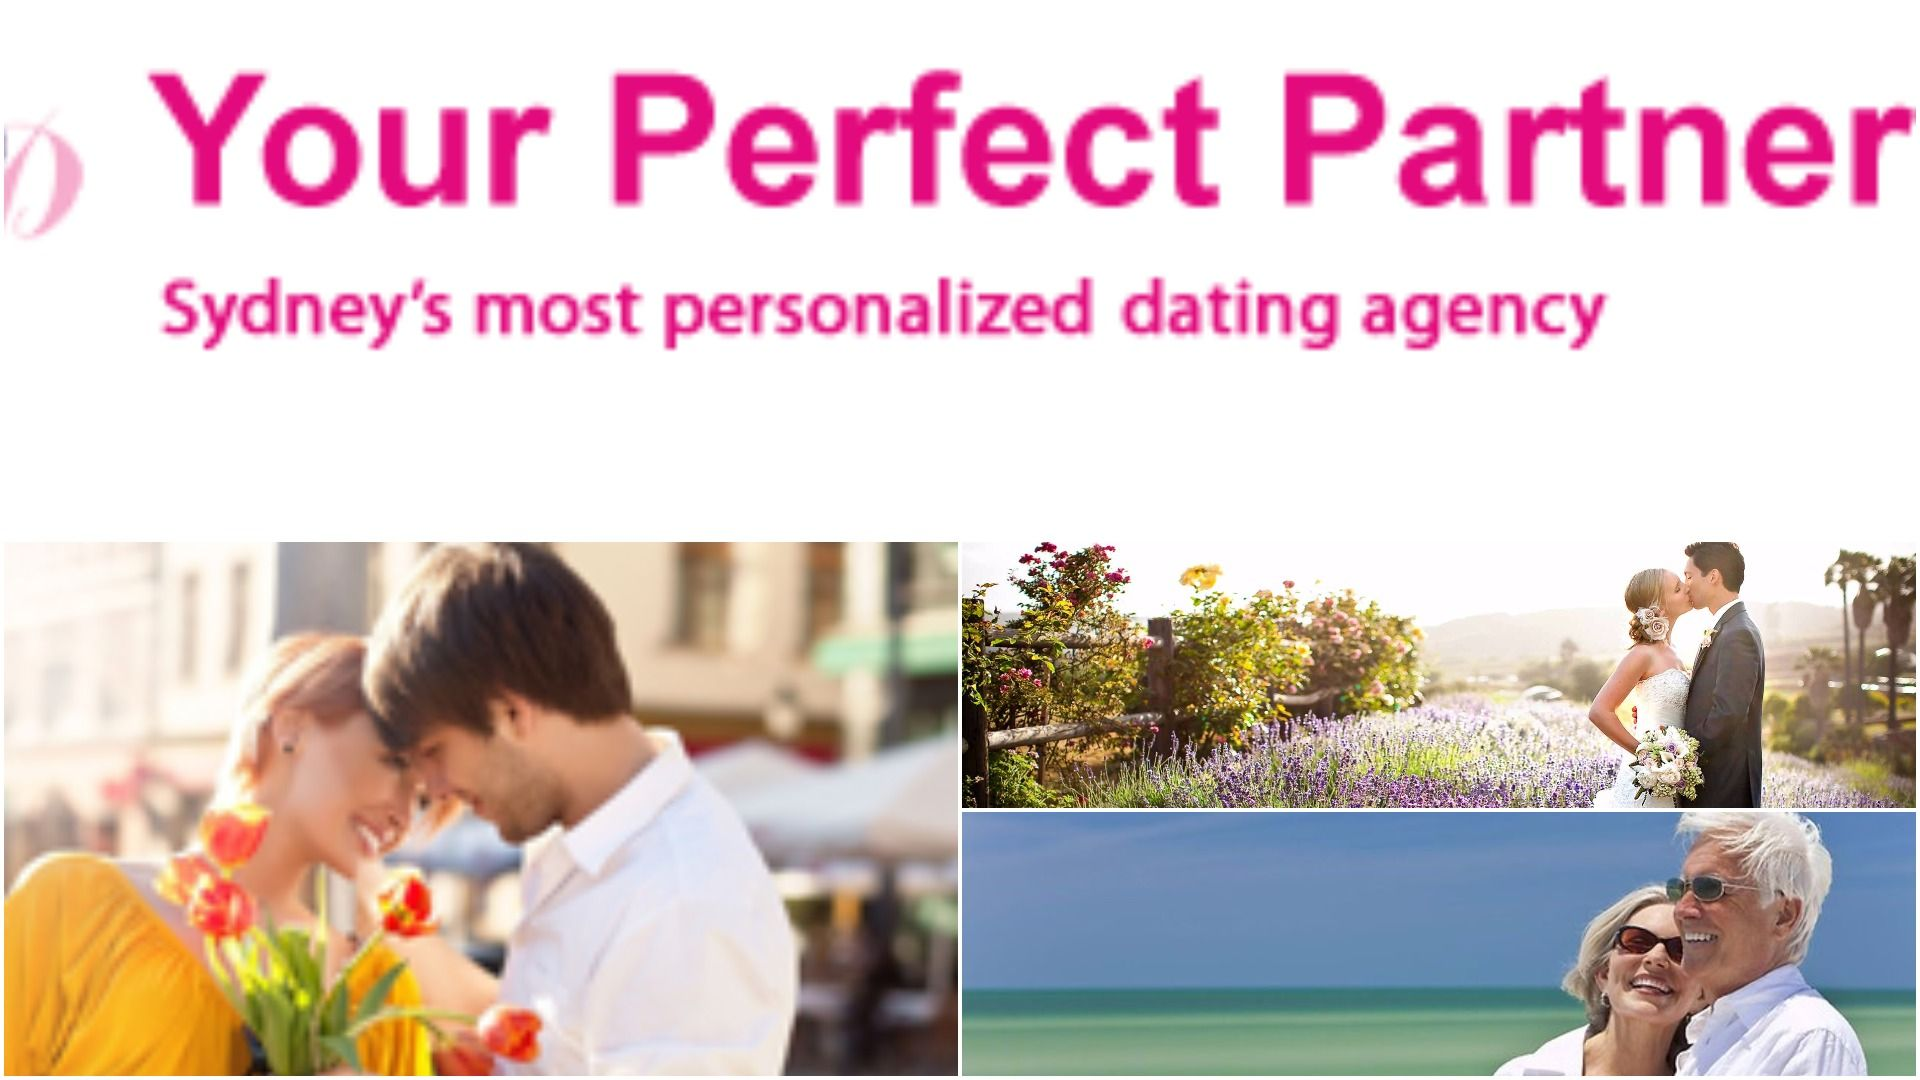 Perfect partner dating agency